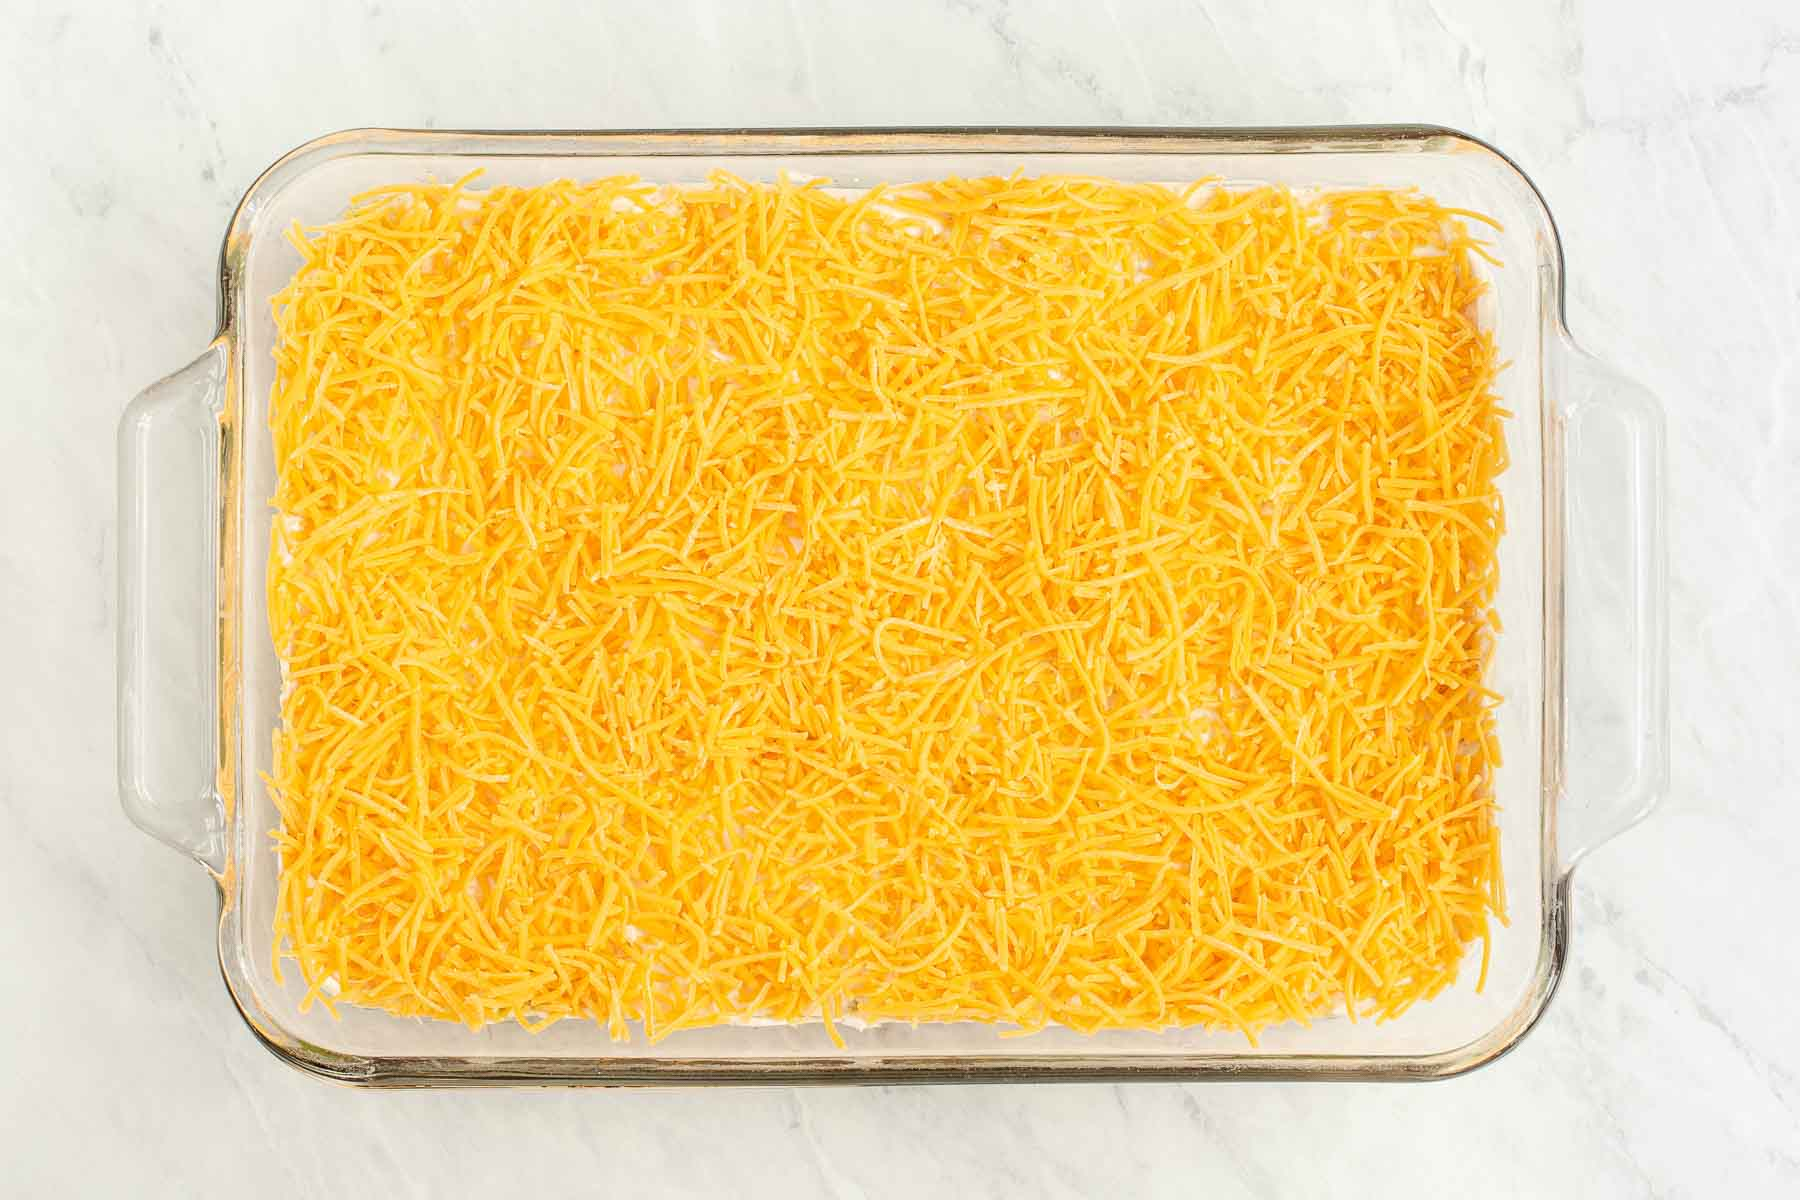 Grated cheddar over sour cream in a casserole dish.